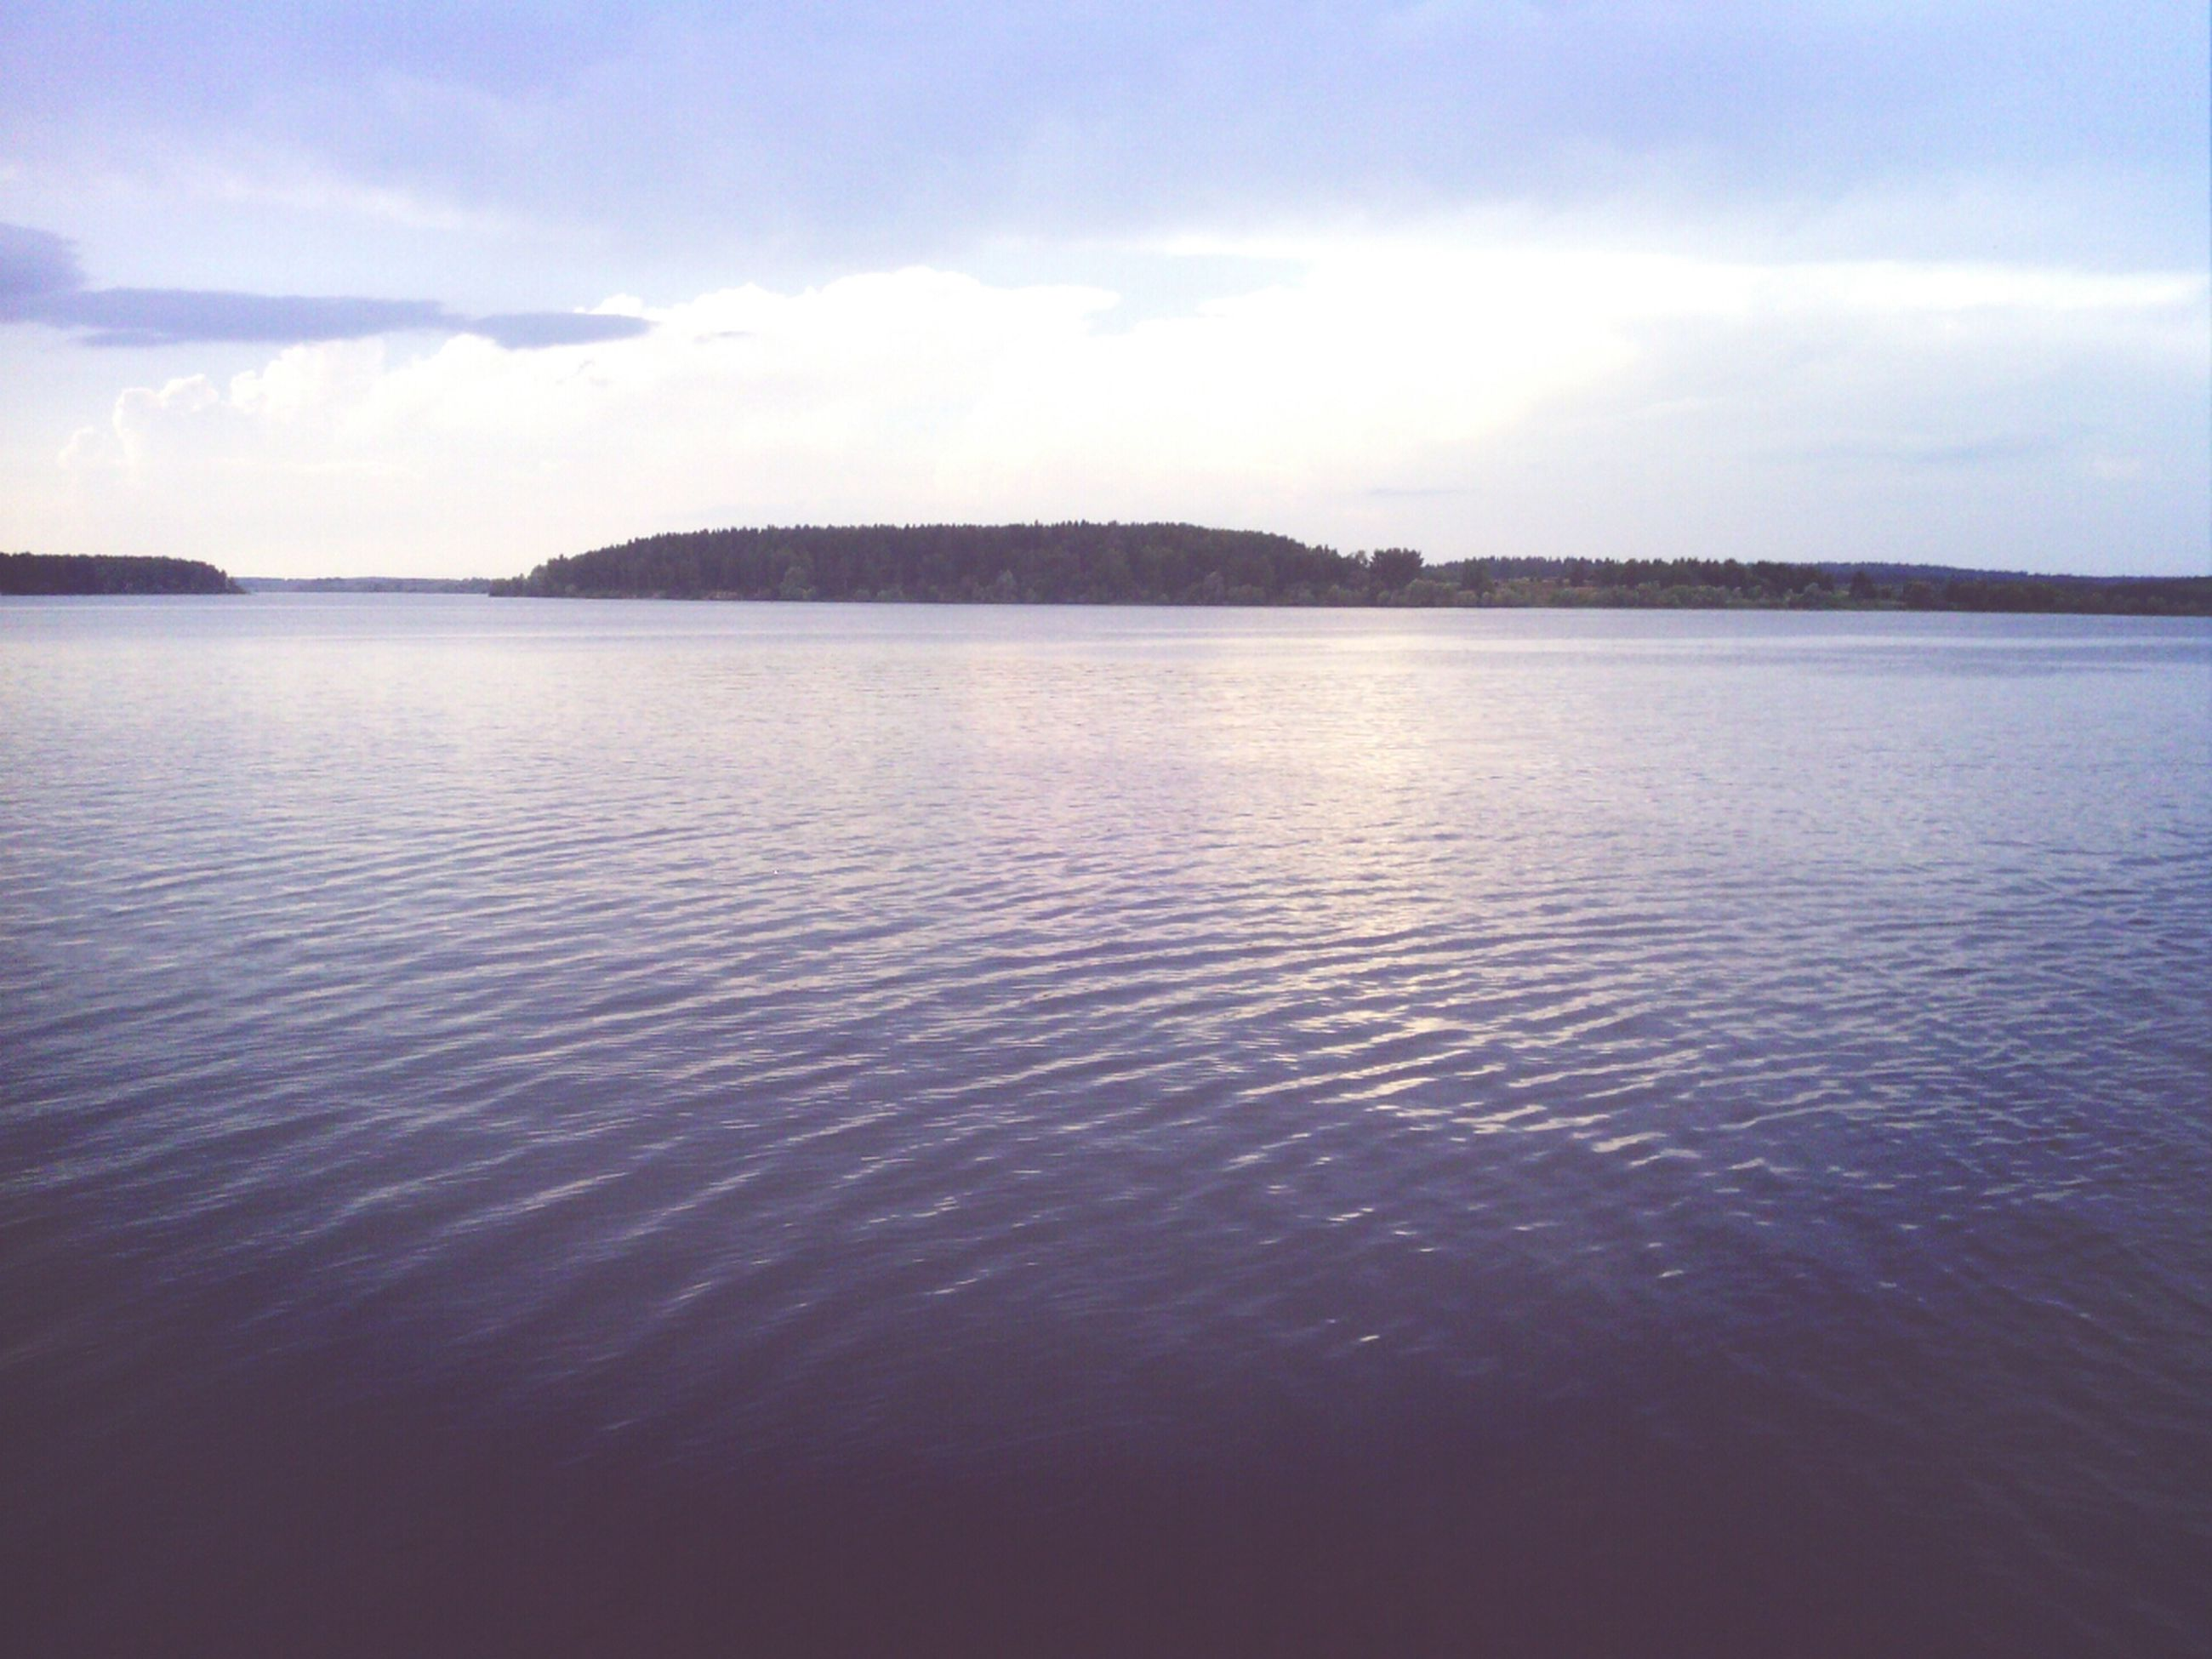 water, tranquil scene, sky, waterfront, scenics, tranquility, beauty in nature, rippled, cloud - sky, nature, lake, sea, cloud, idyllic, reflection, mountain, calm, outdoors, no people, cloudy